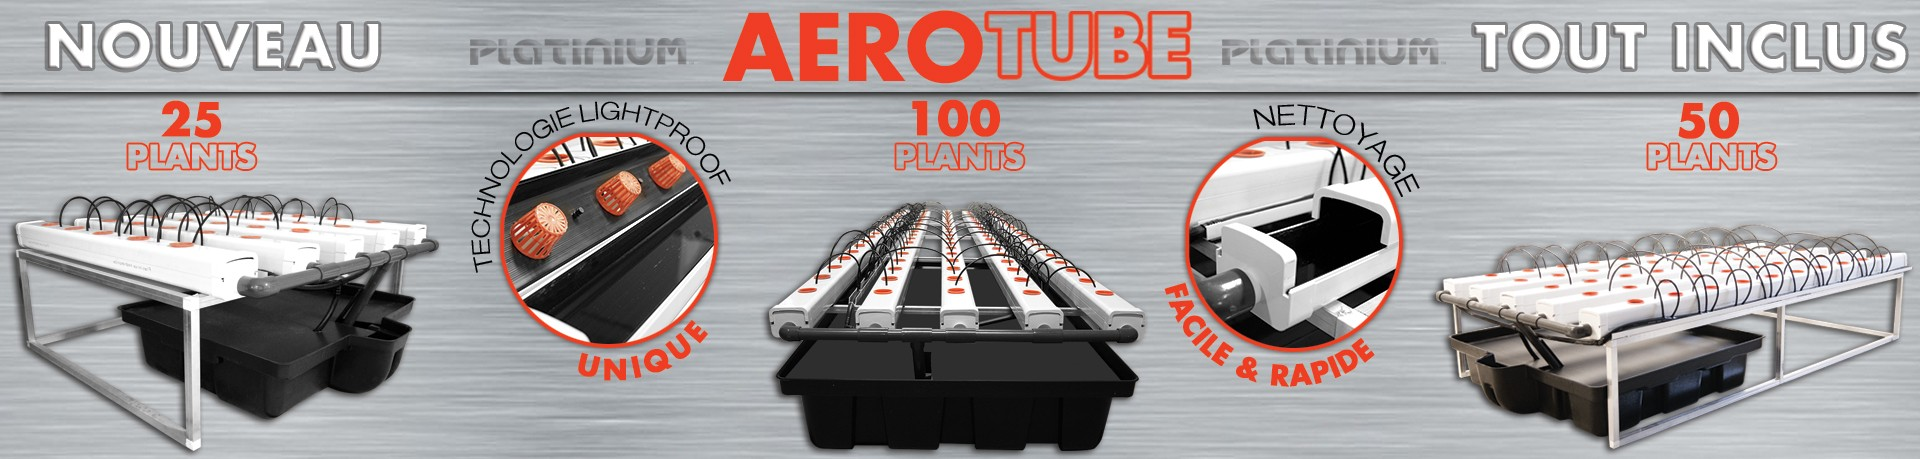 Kit aérotube